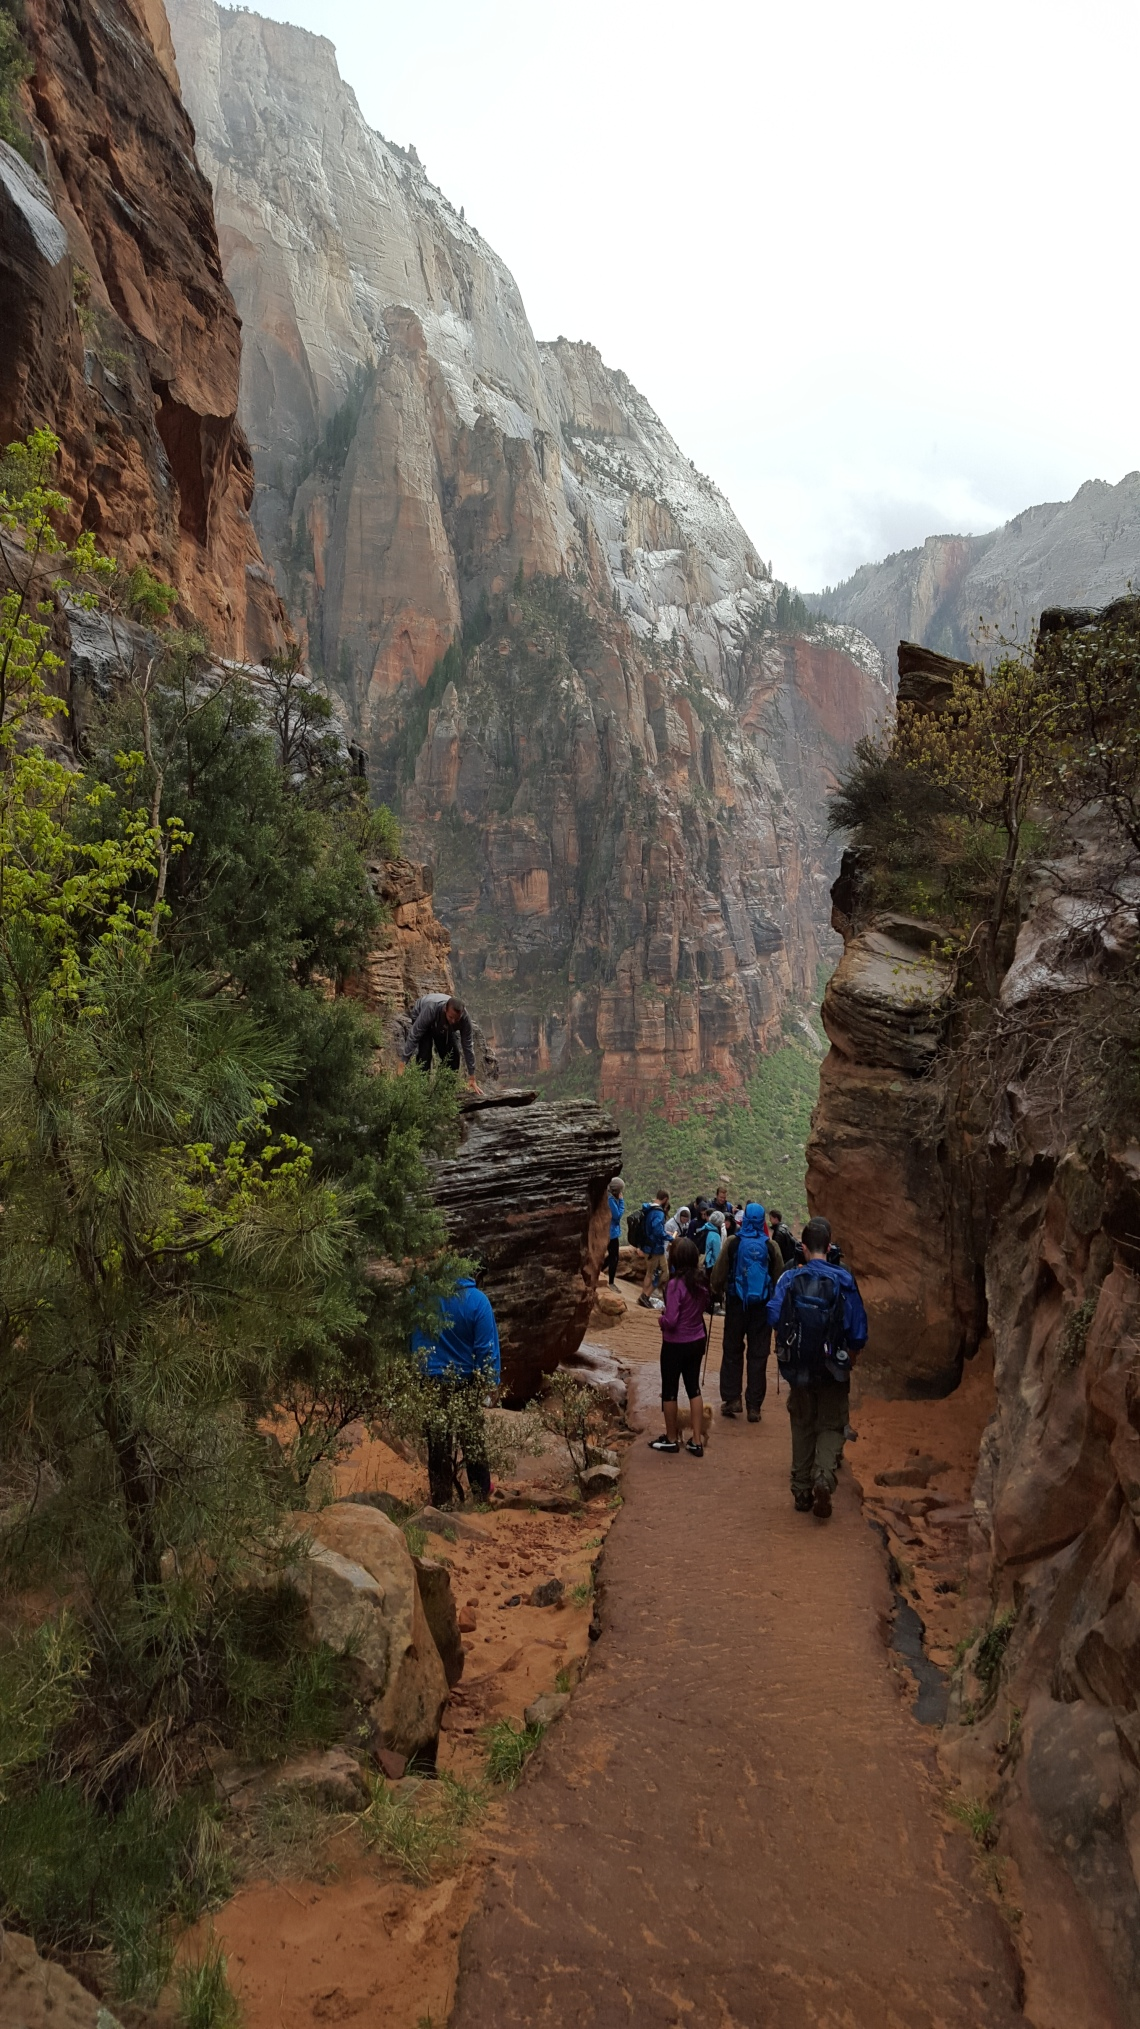 Angels Landing Trail Zion National Park 22.03.1620160322_144826